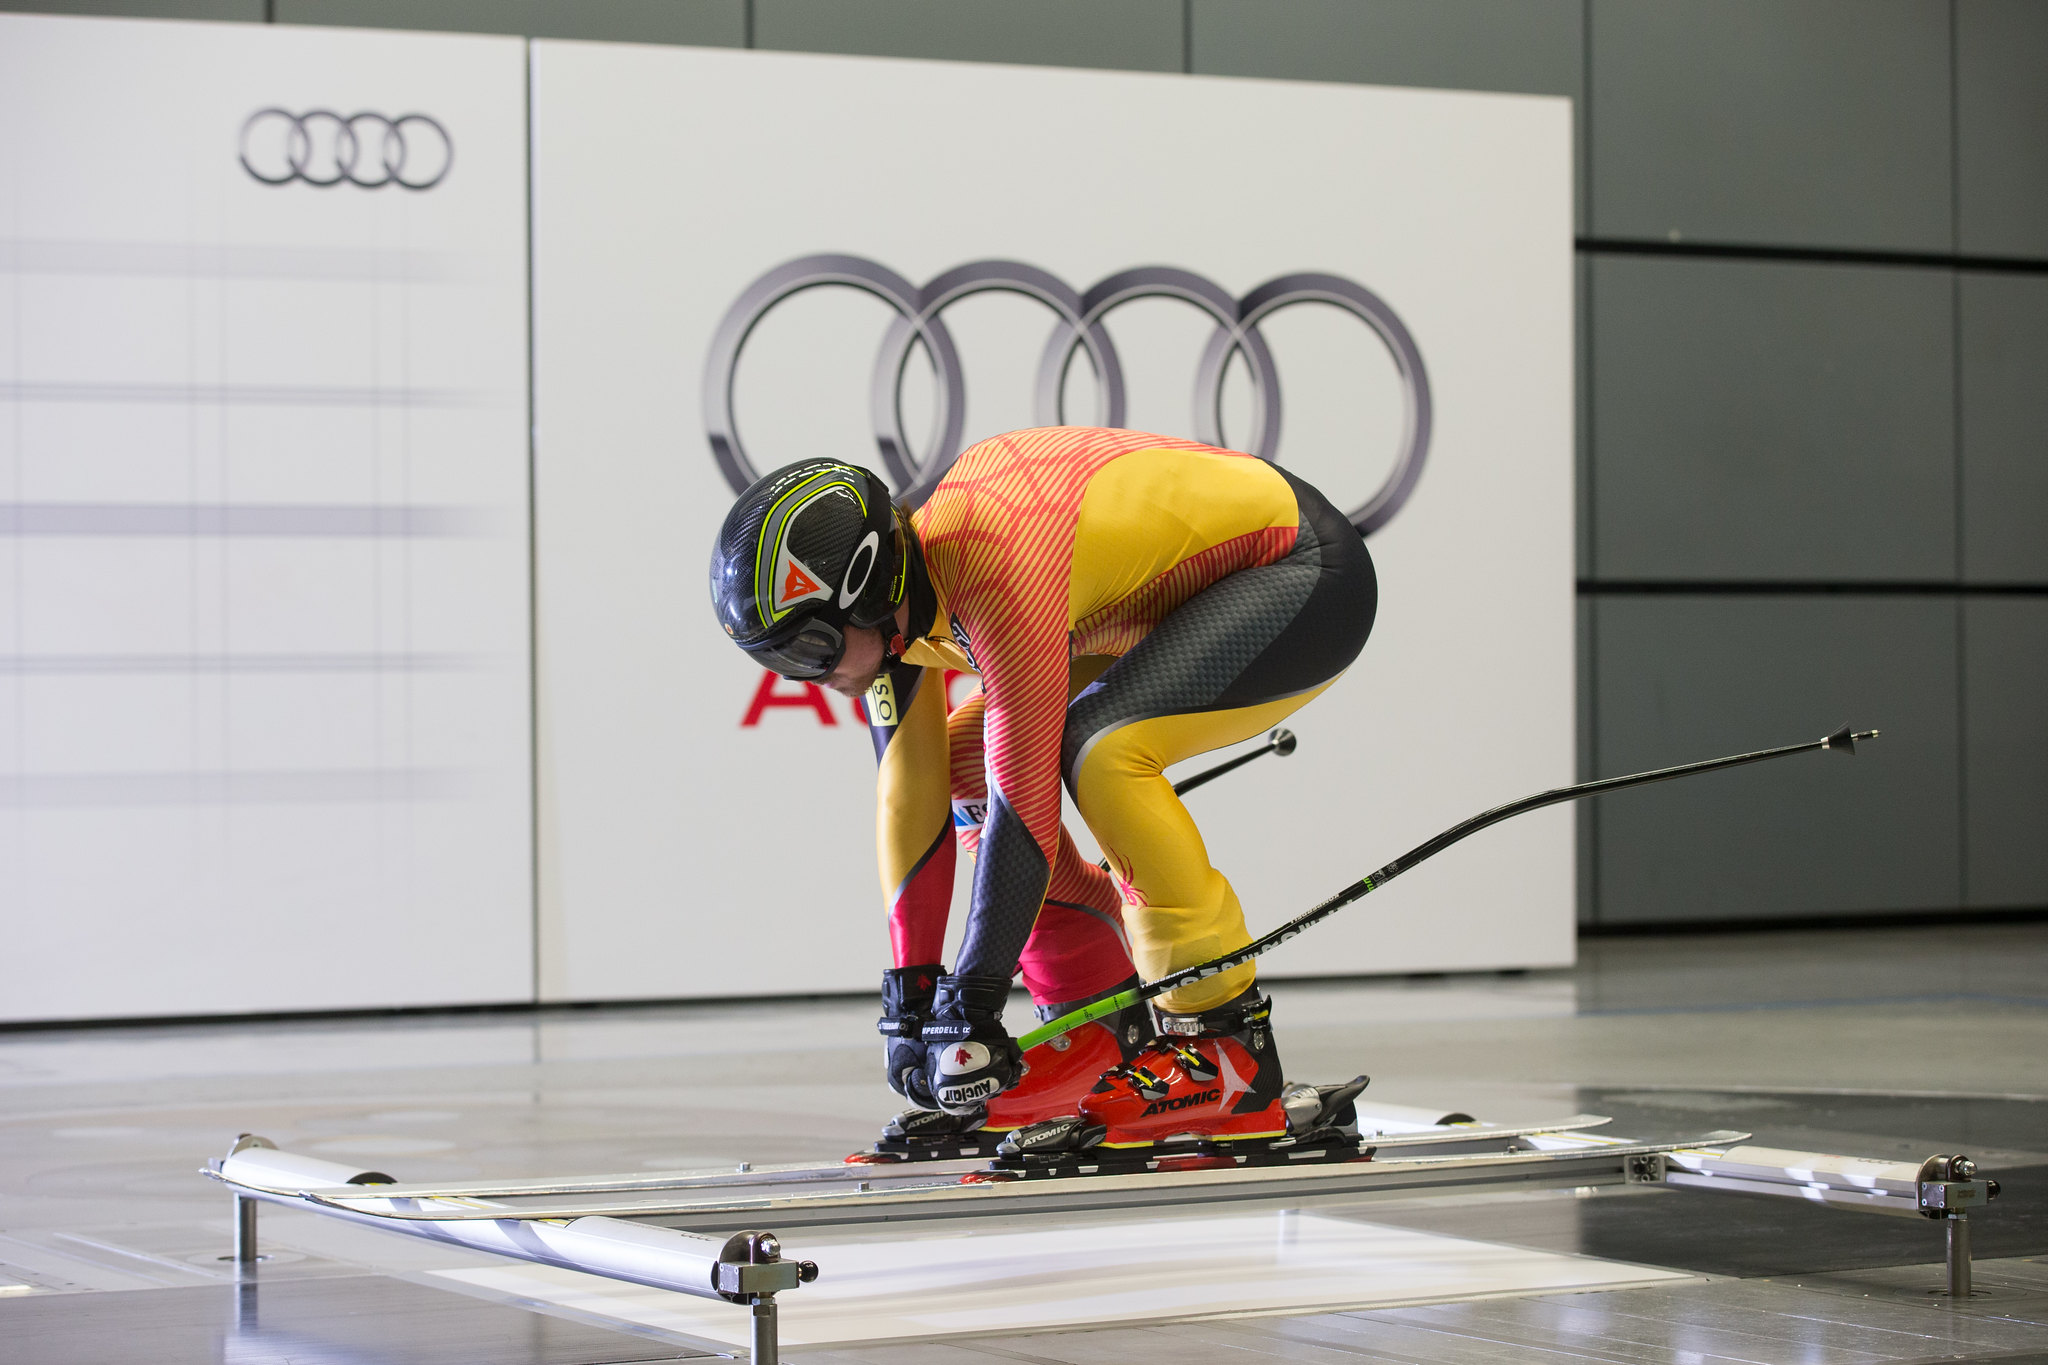 John Kucera during wind-tunnel testing at an Audi facility in Germany.